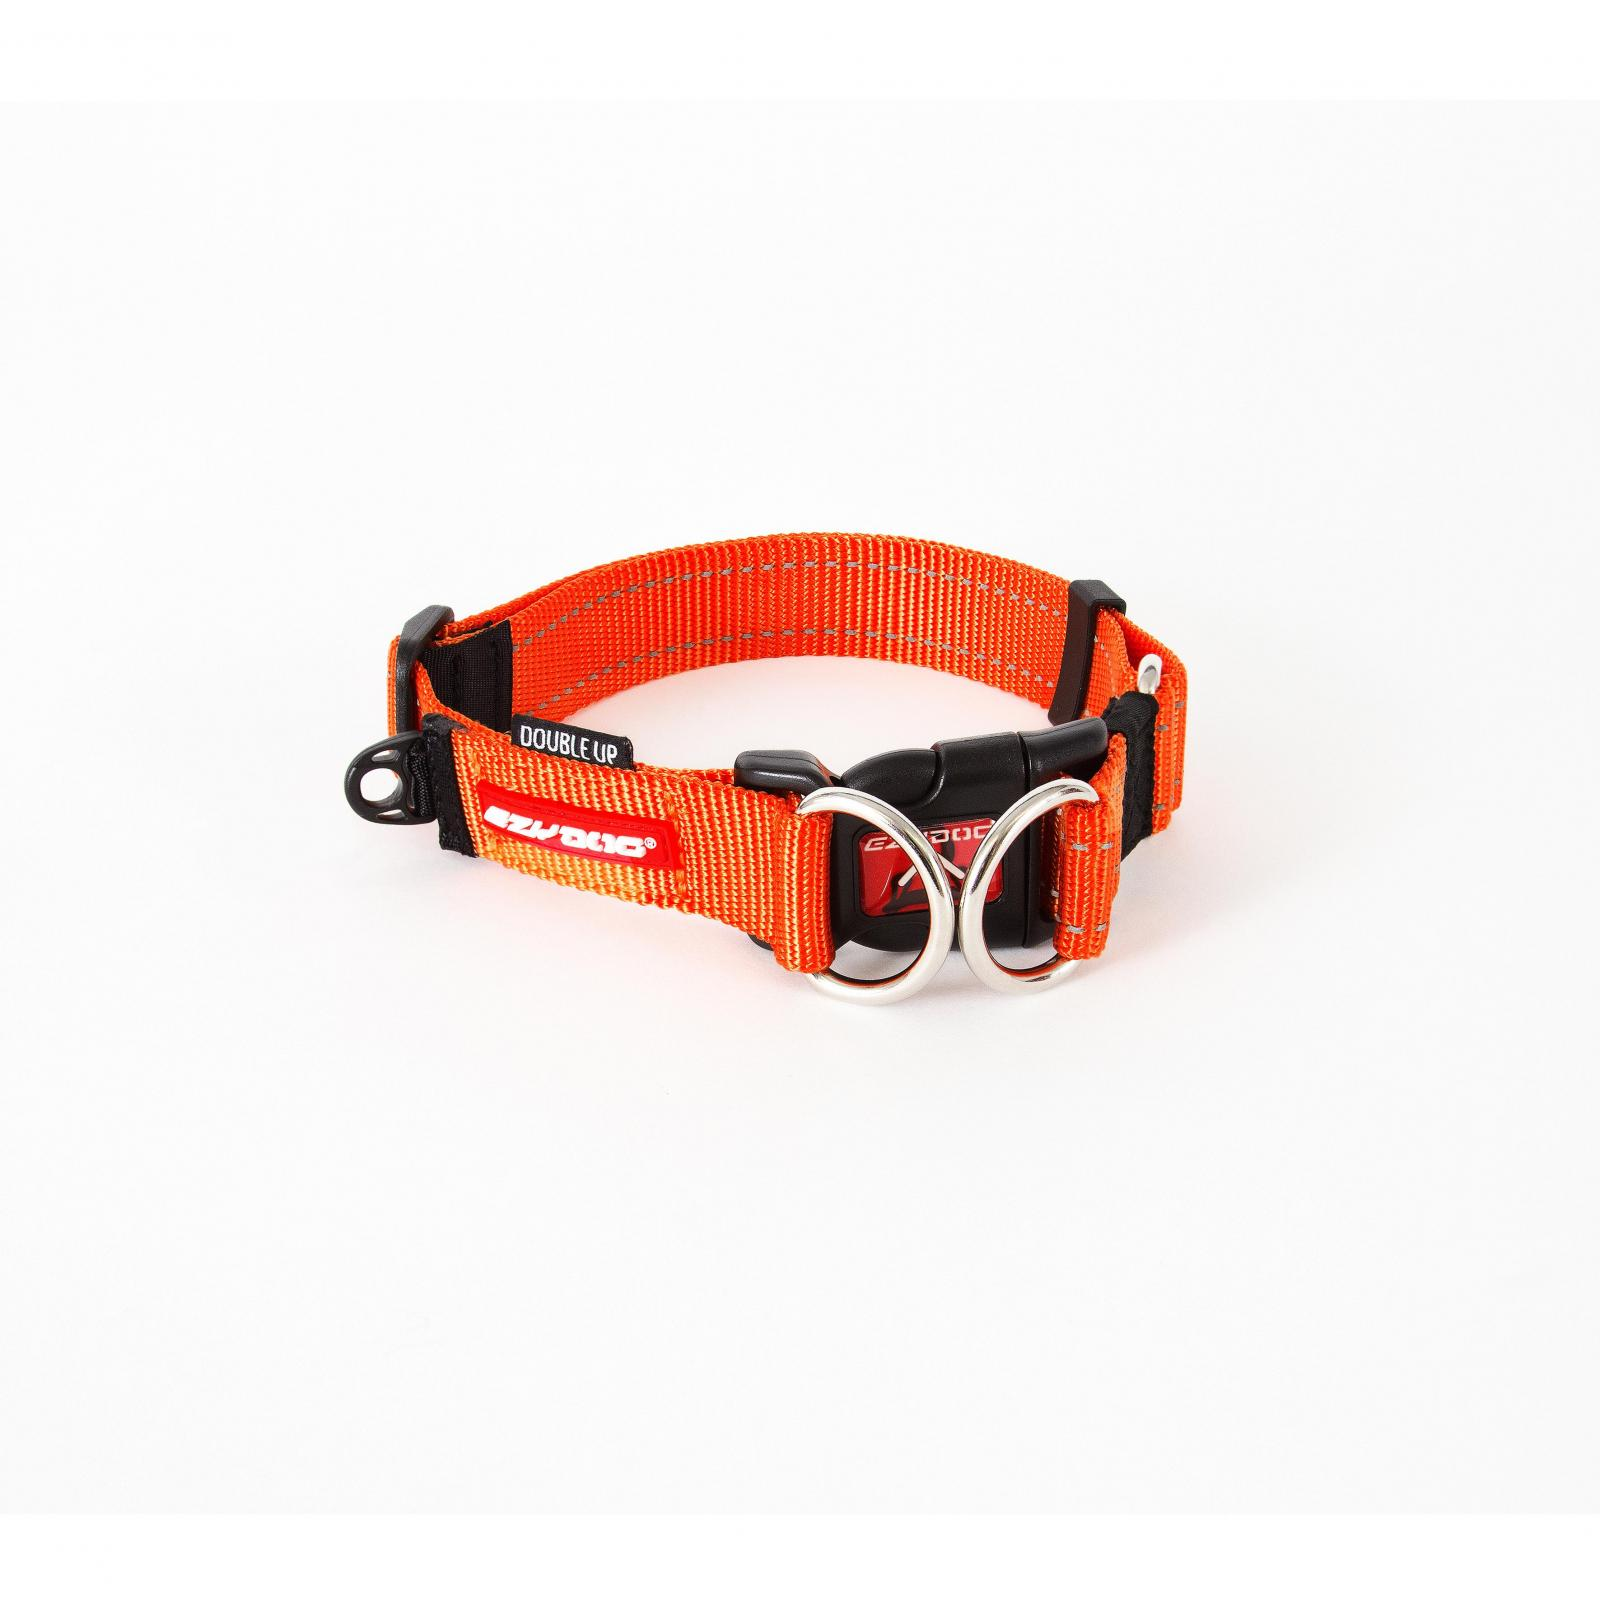 Ezydog Ezydog Double Up Collar